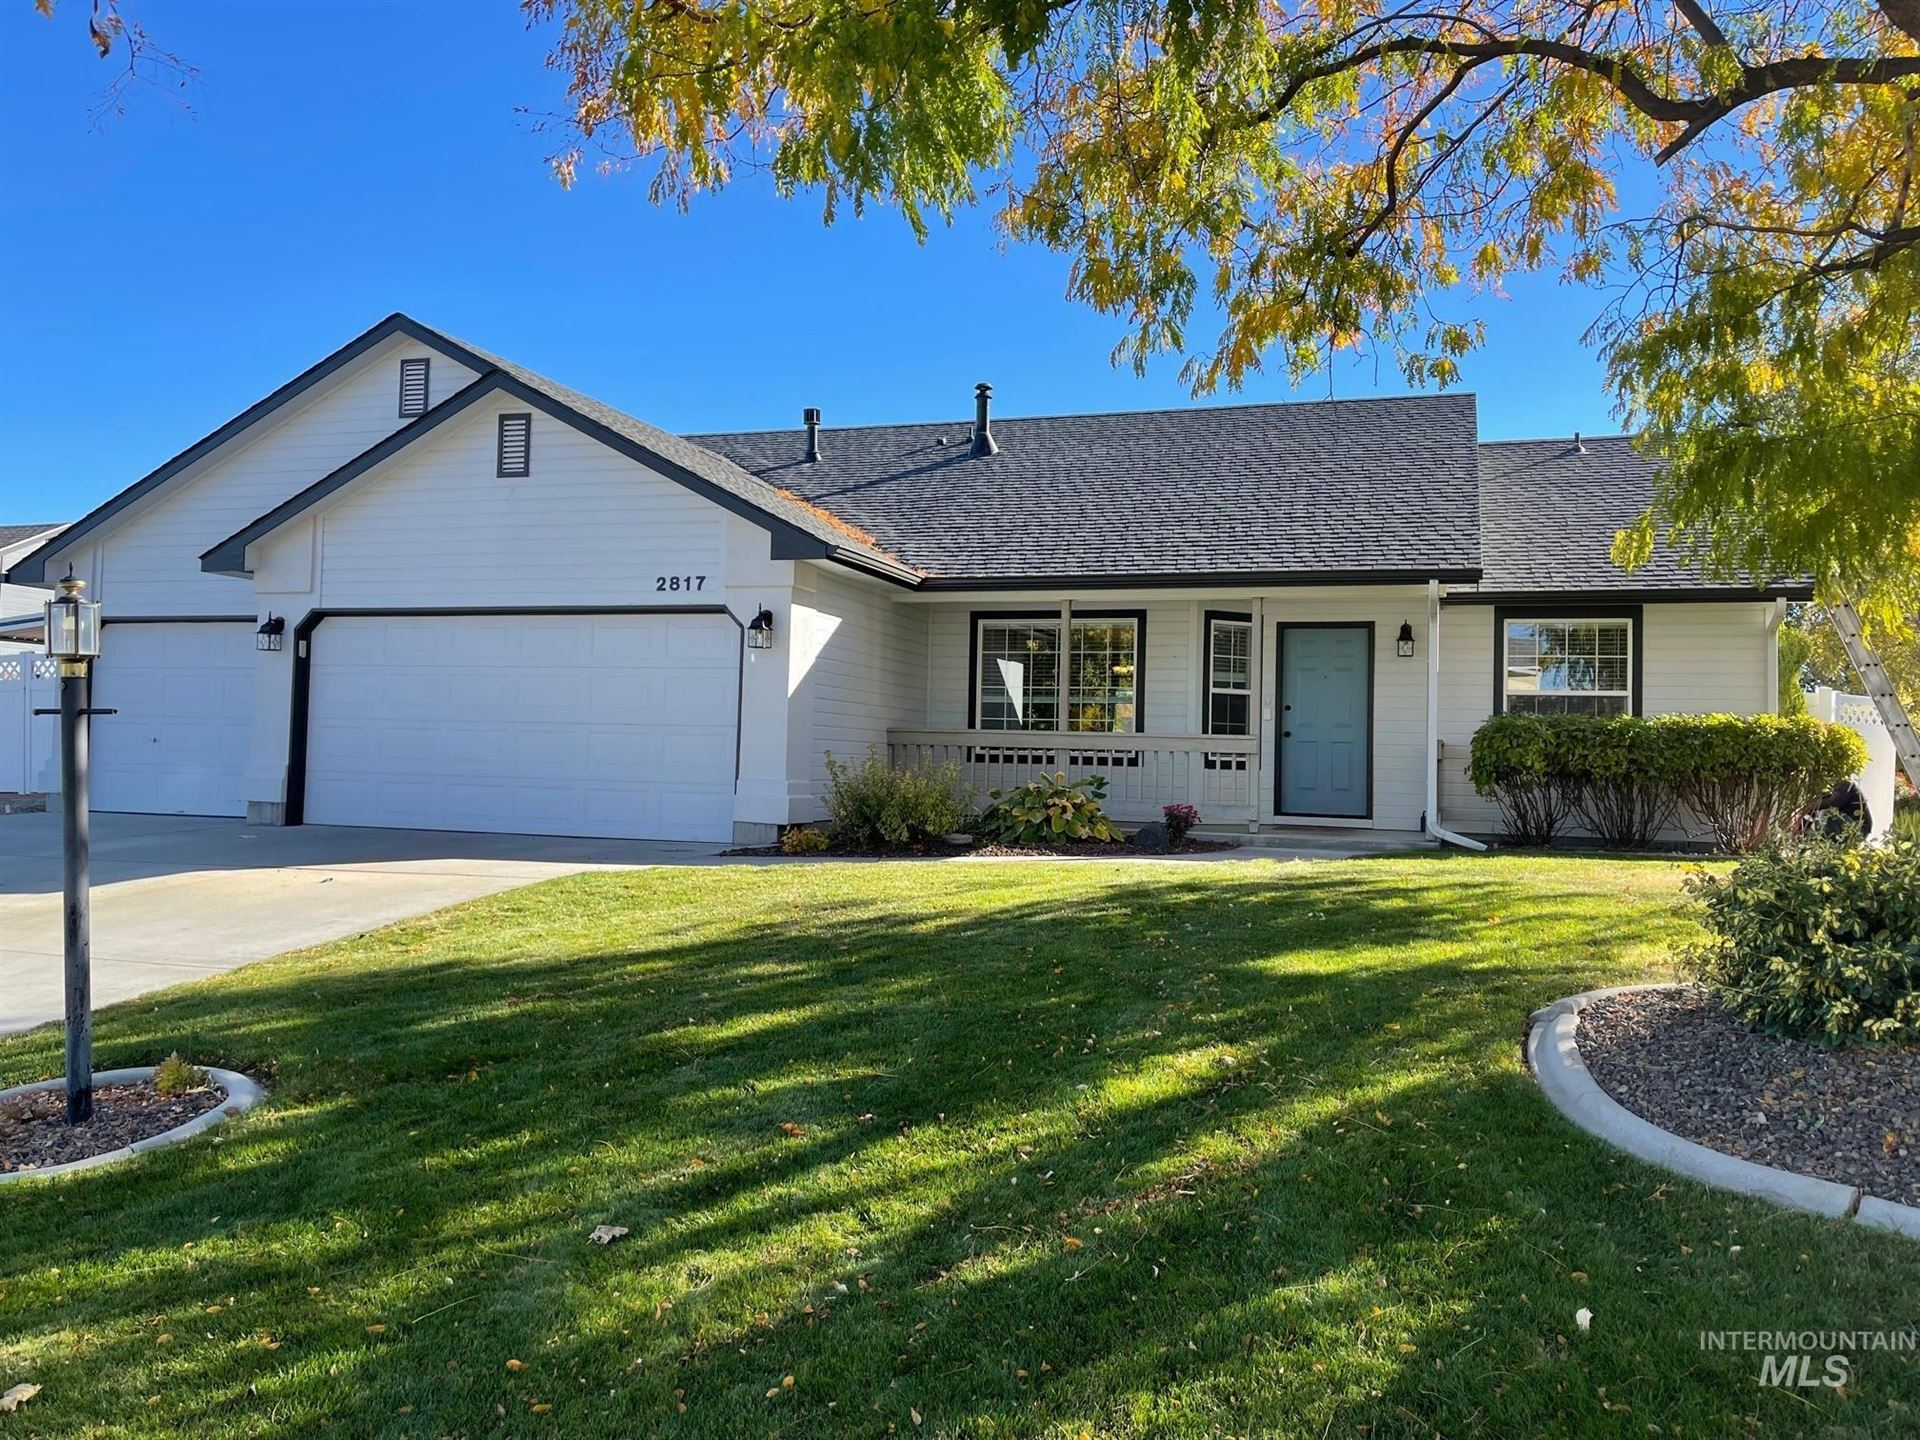 Photo of 2817 Sioux Street, Nampa, ID 83686 (MLS # 98822602)